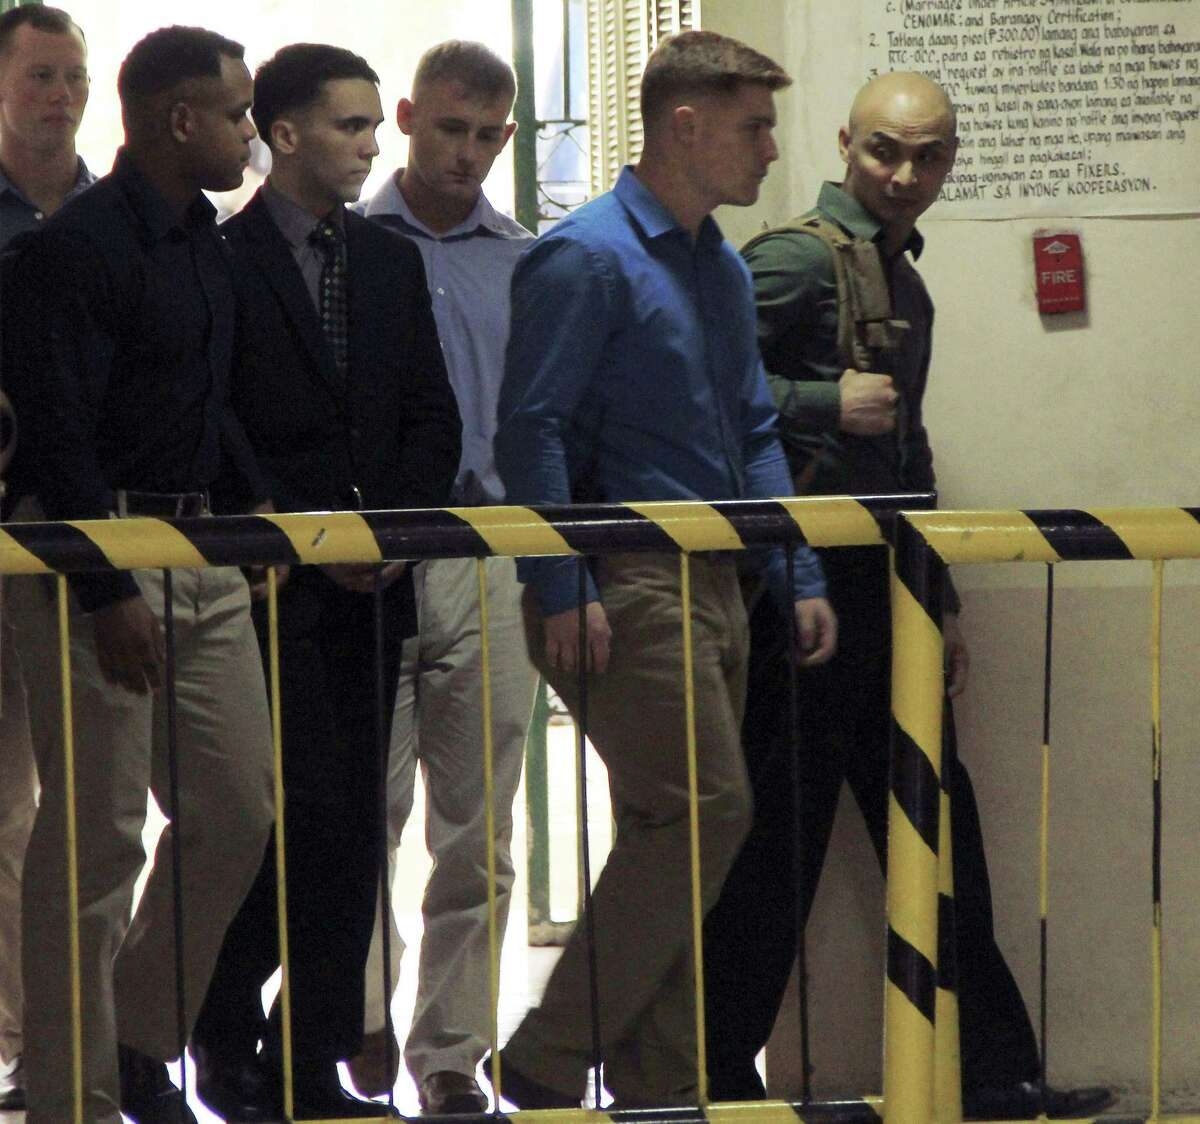 "U.S. Marine Pfc. Joseph Scott Pemberton, third left, the suspect in the Oct.11, 2014 killing of Filipino transgender Jennifer Laude at the former U.S. naval base of Subic, northwest of Manila, is escorted into the courtroom for his scheduled trial March 23, 2015 at Olongapo city, Zambales province, northwest of Manila, Philippines. Pemberton was tagged as the suspect in the killing which the protesters termed as a ""hate crime"" against LGBT (Lesbian, Gay, Bisexual and Transgender) Filipinos."